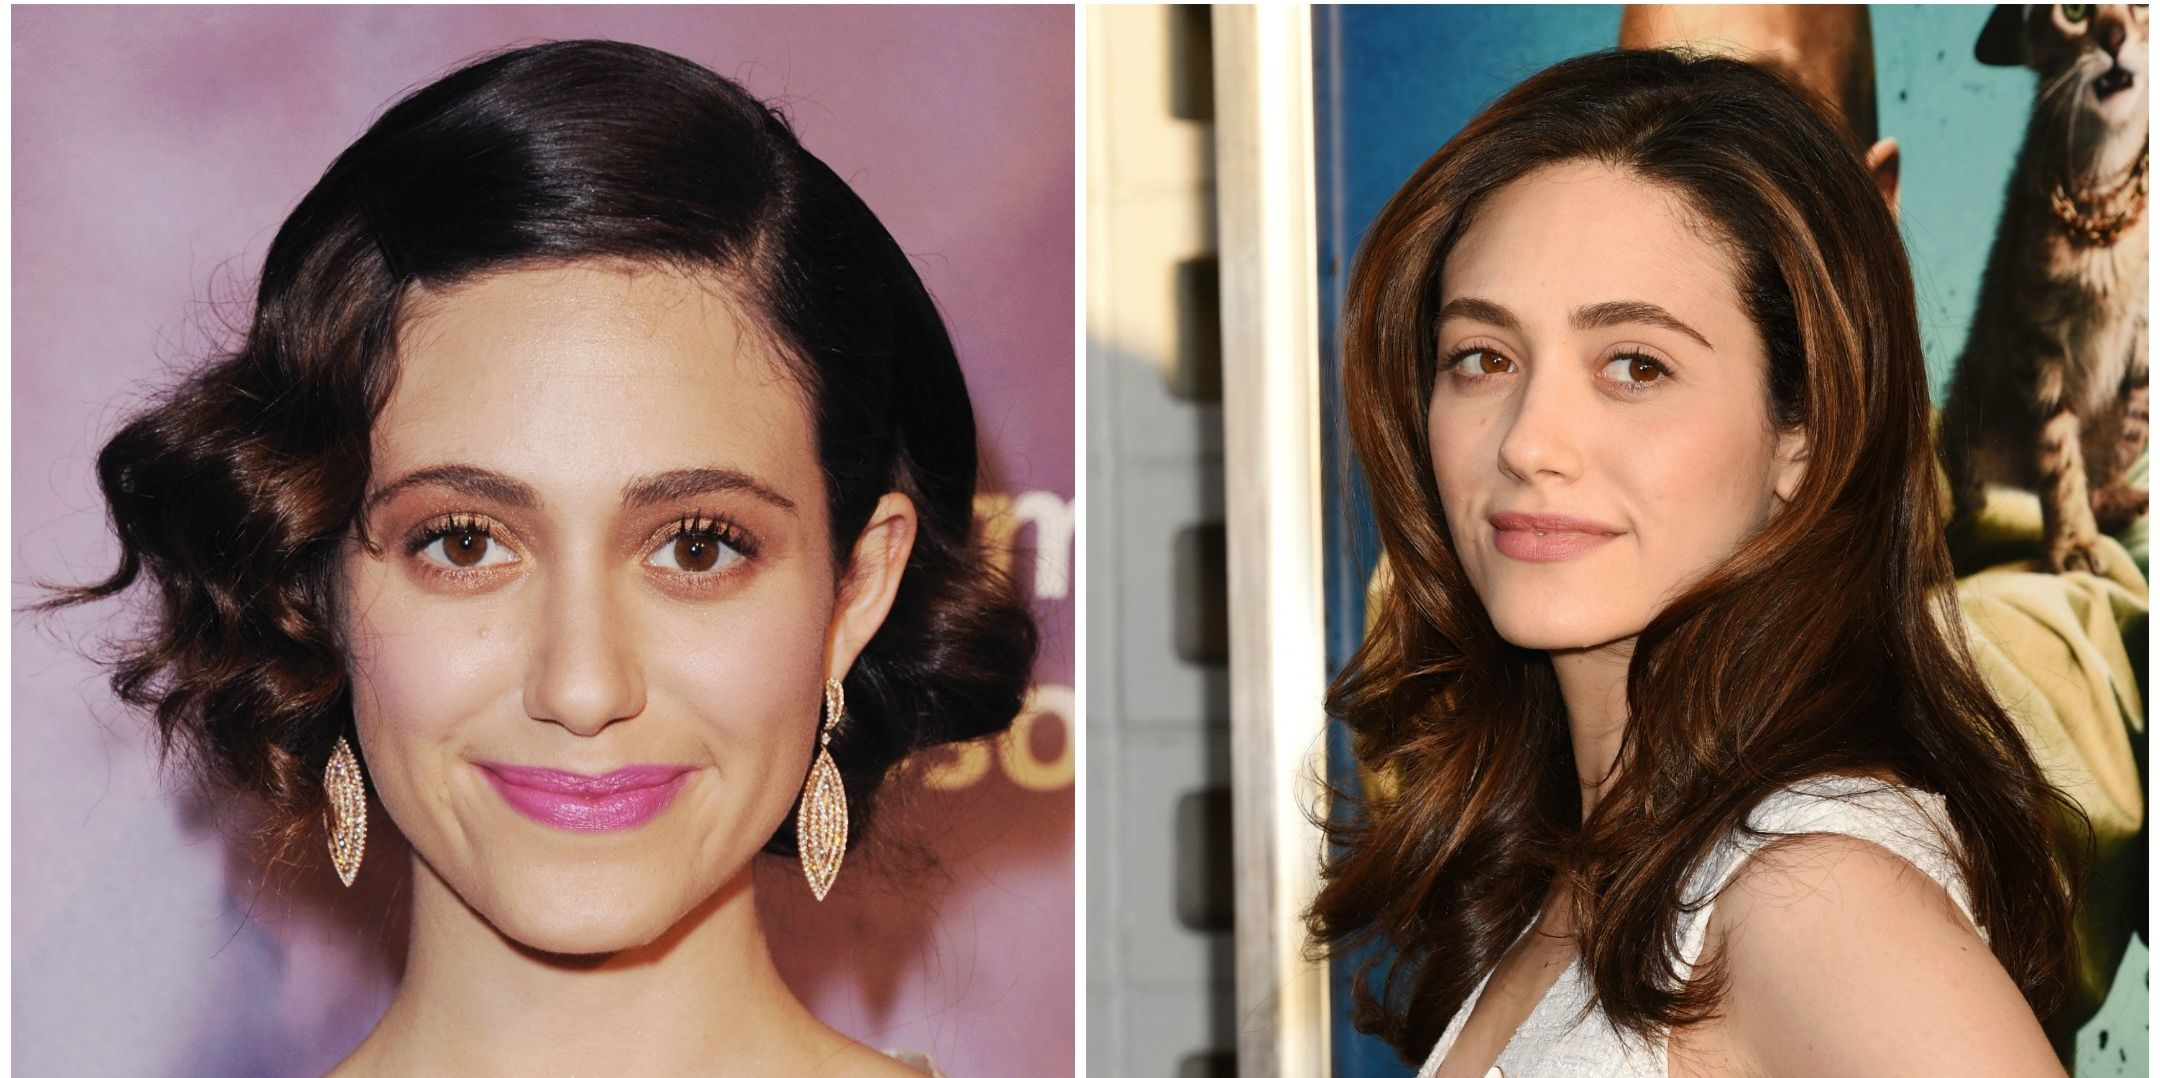 """Emmy Rossum There's a fine line between wanting to pump up the fun with your makeup, and looking like, well, a clown. Emmy may have veered a bit too far once, but her look these days proves she's learned a trick or two in the """"less is more"""" category."""